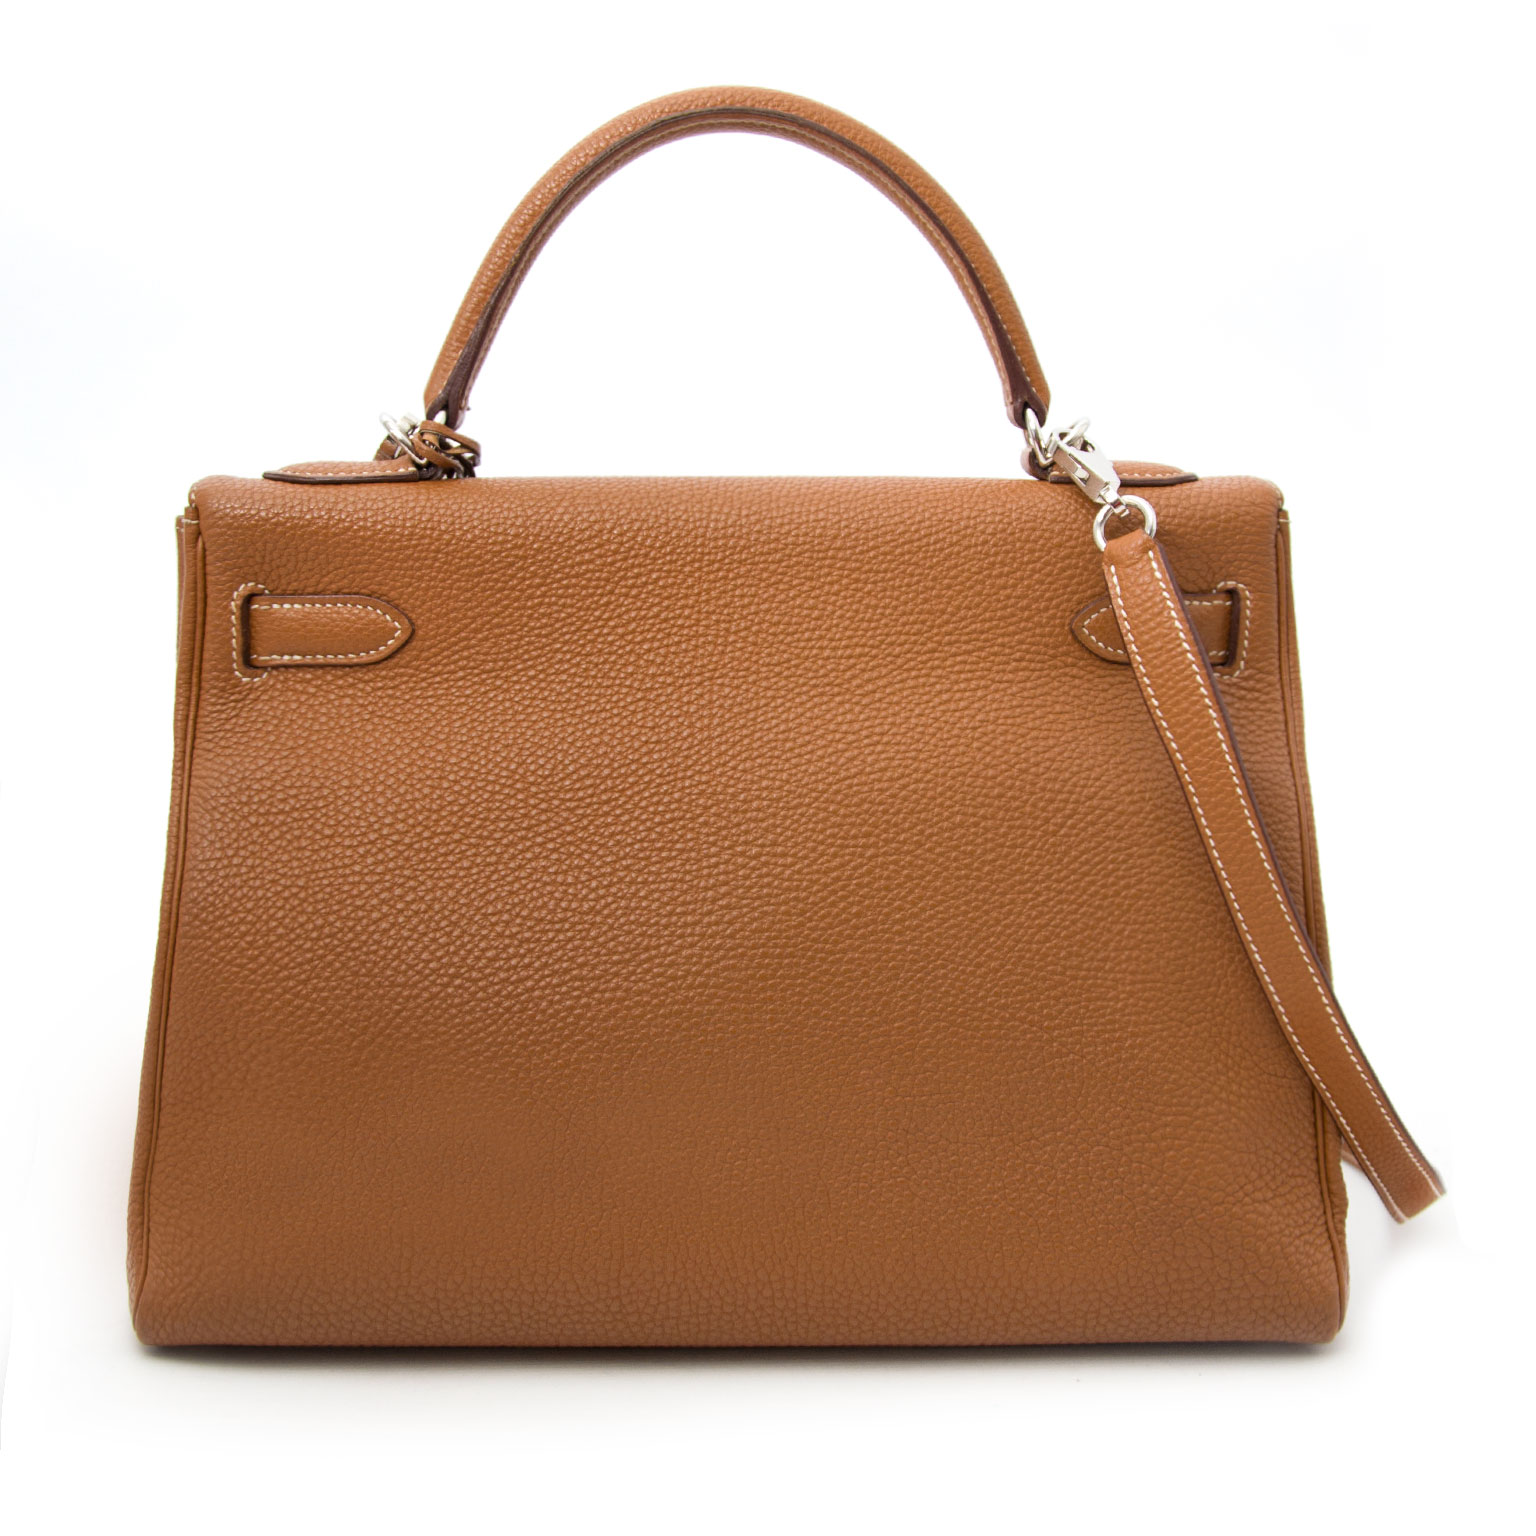 Hermès Kelly 32 togo gold phw now online at labellov.com authenticity guaranteed